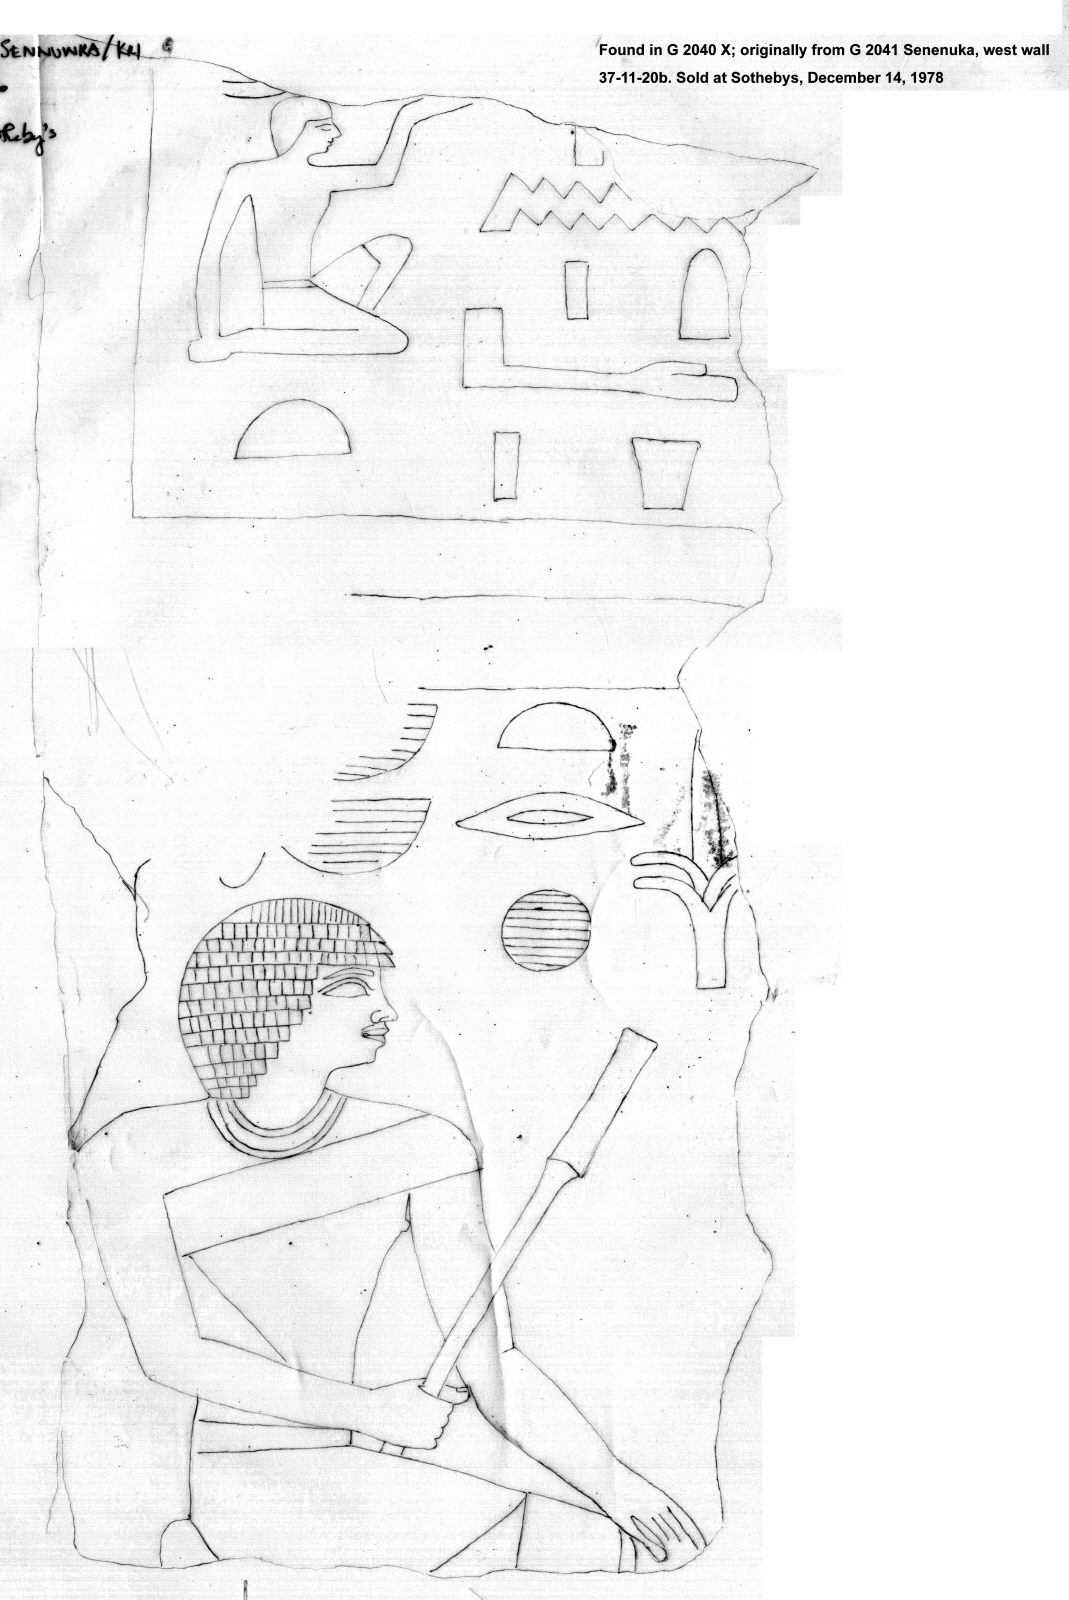 Drawings: G 2040, found in shaft X; originally from G 2041: relief from W wall